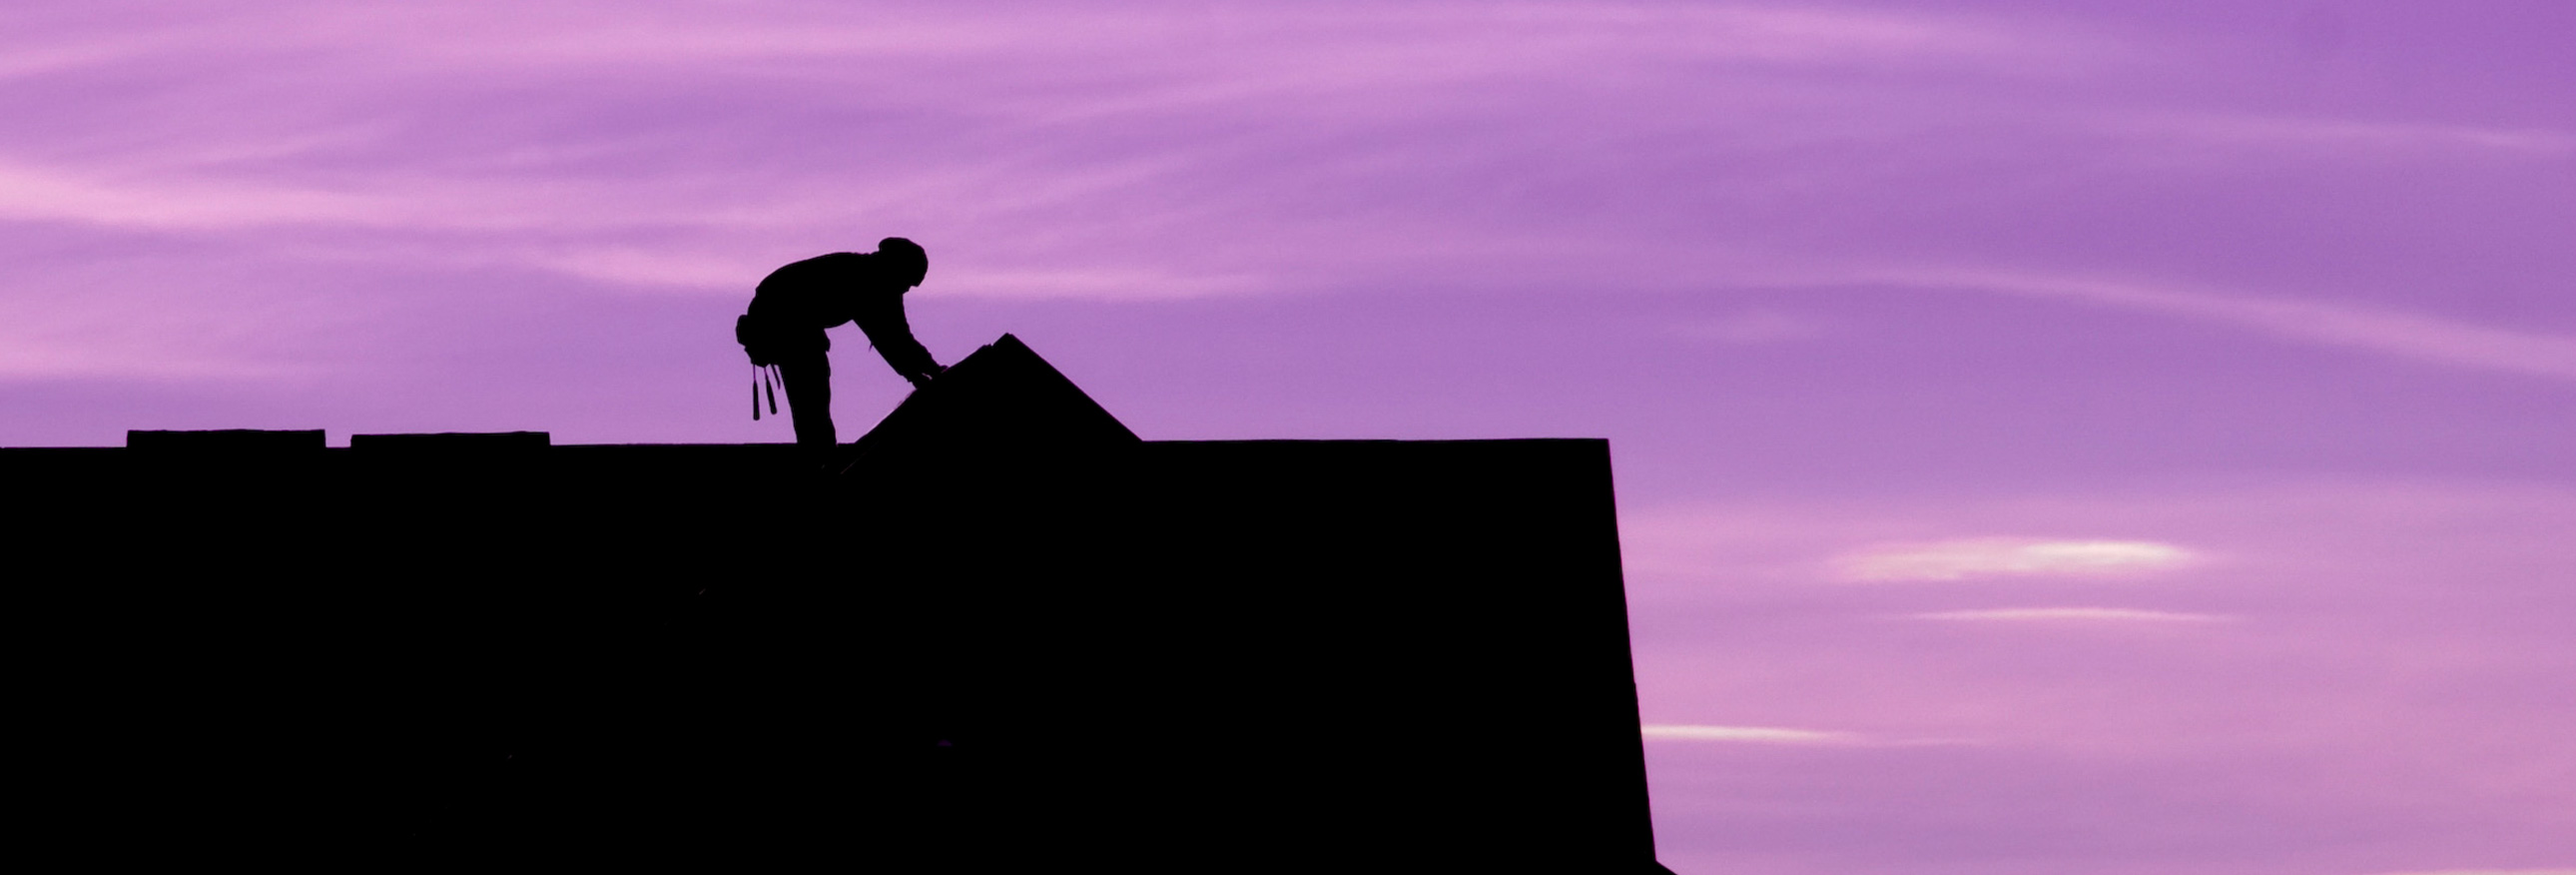 silhouette of worker on roof against a purple sky